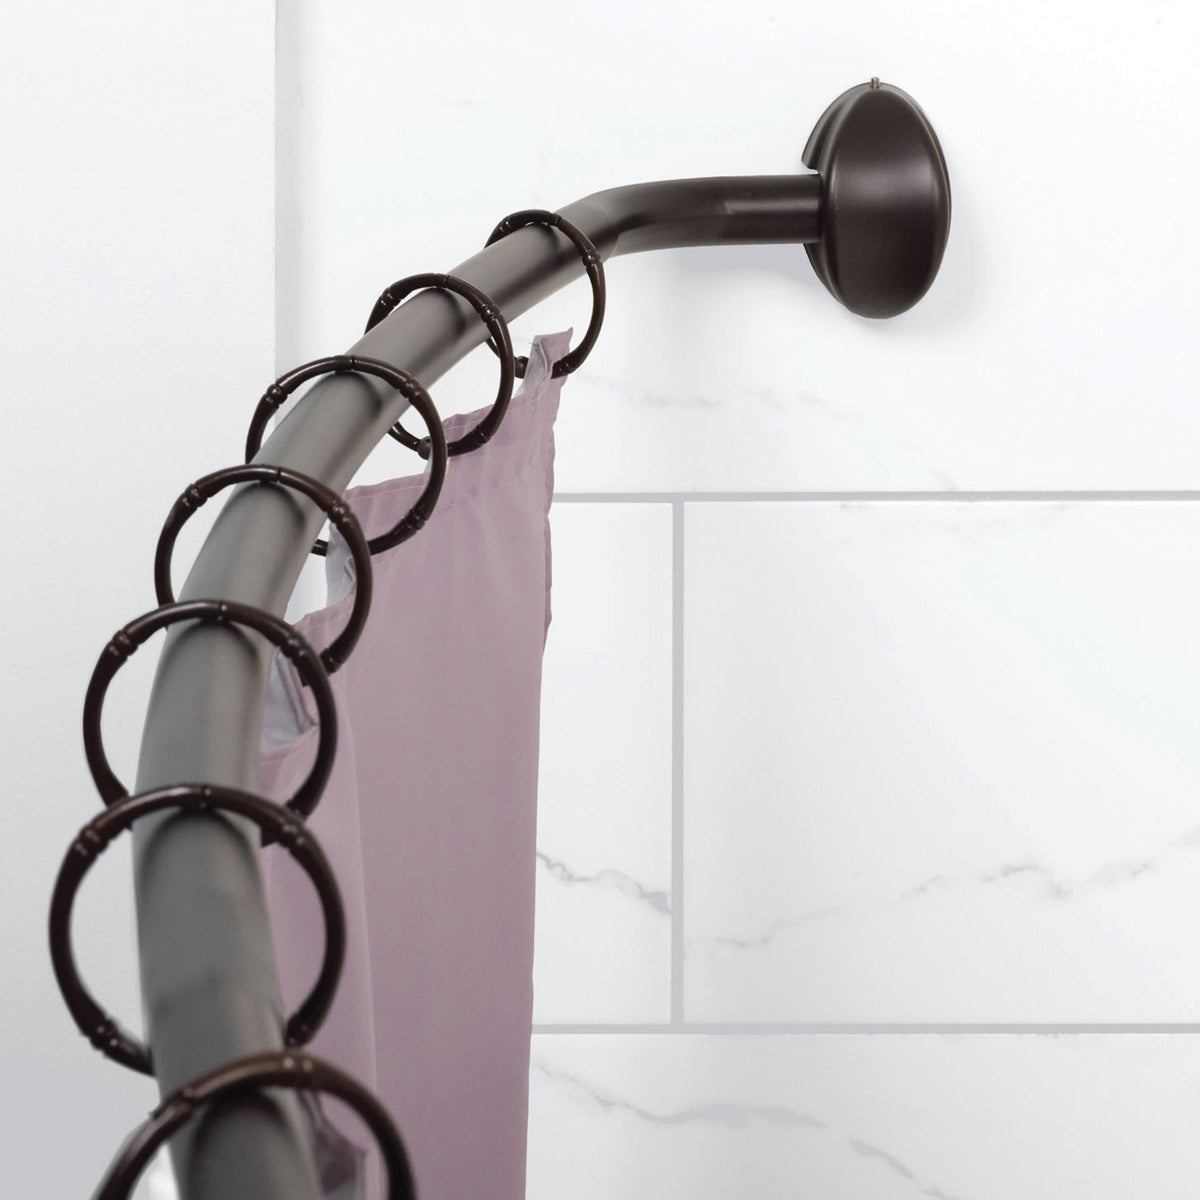 HB CURVED ADJ SHOWER ROD